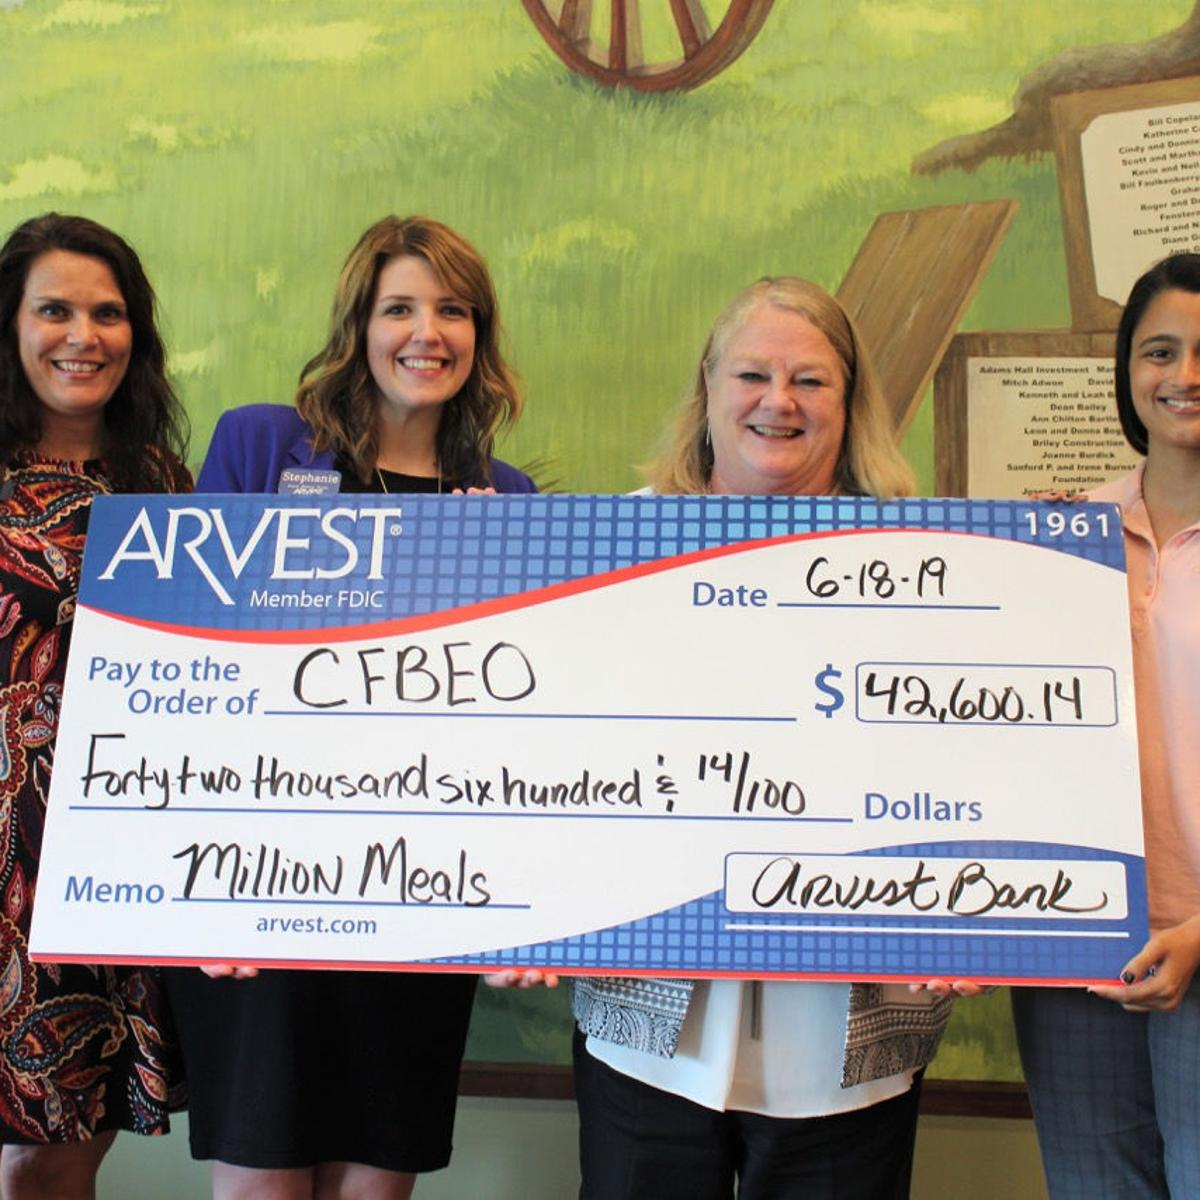 Arvest Bank concludes Million Meals campaign | News